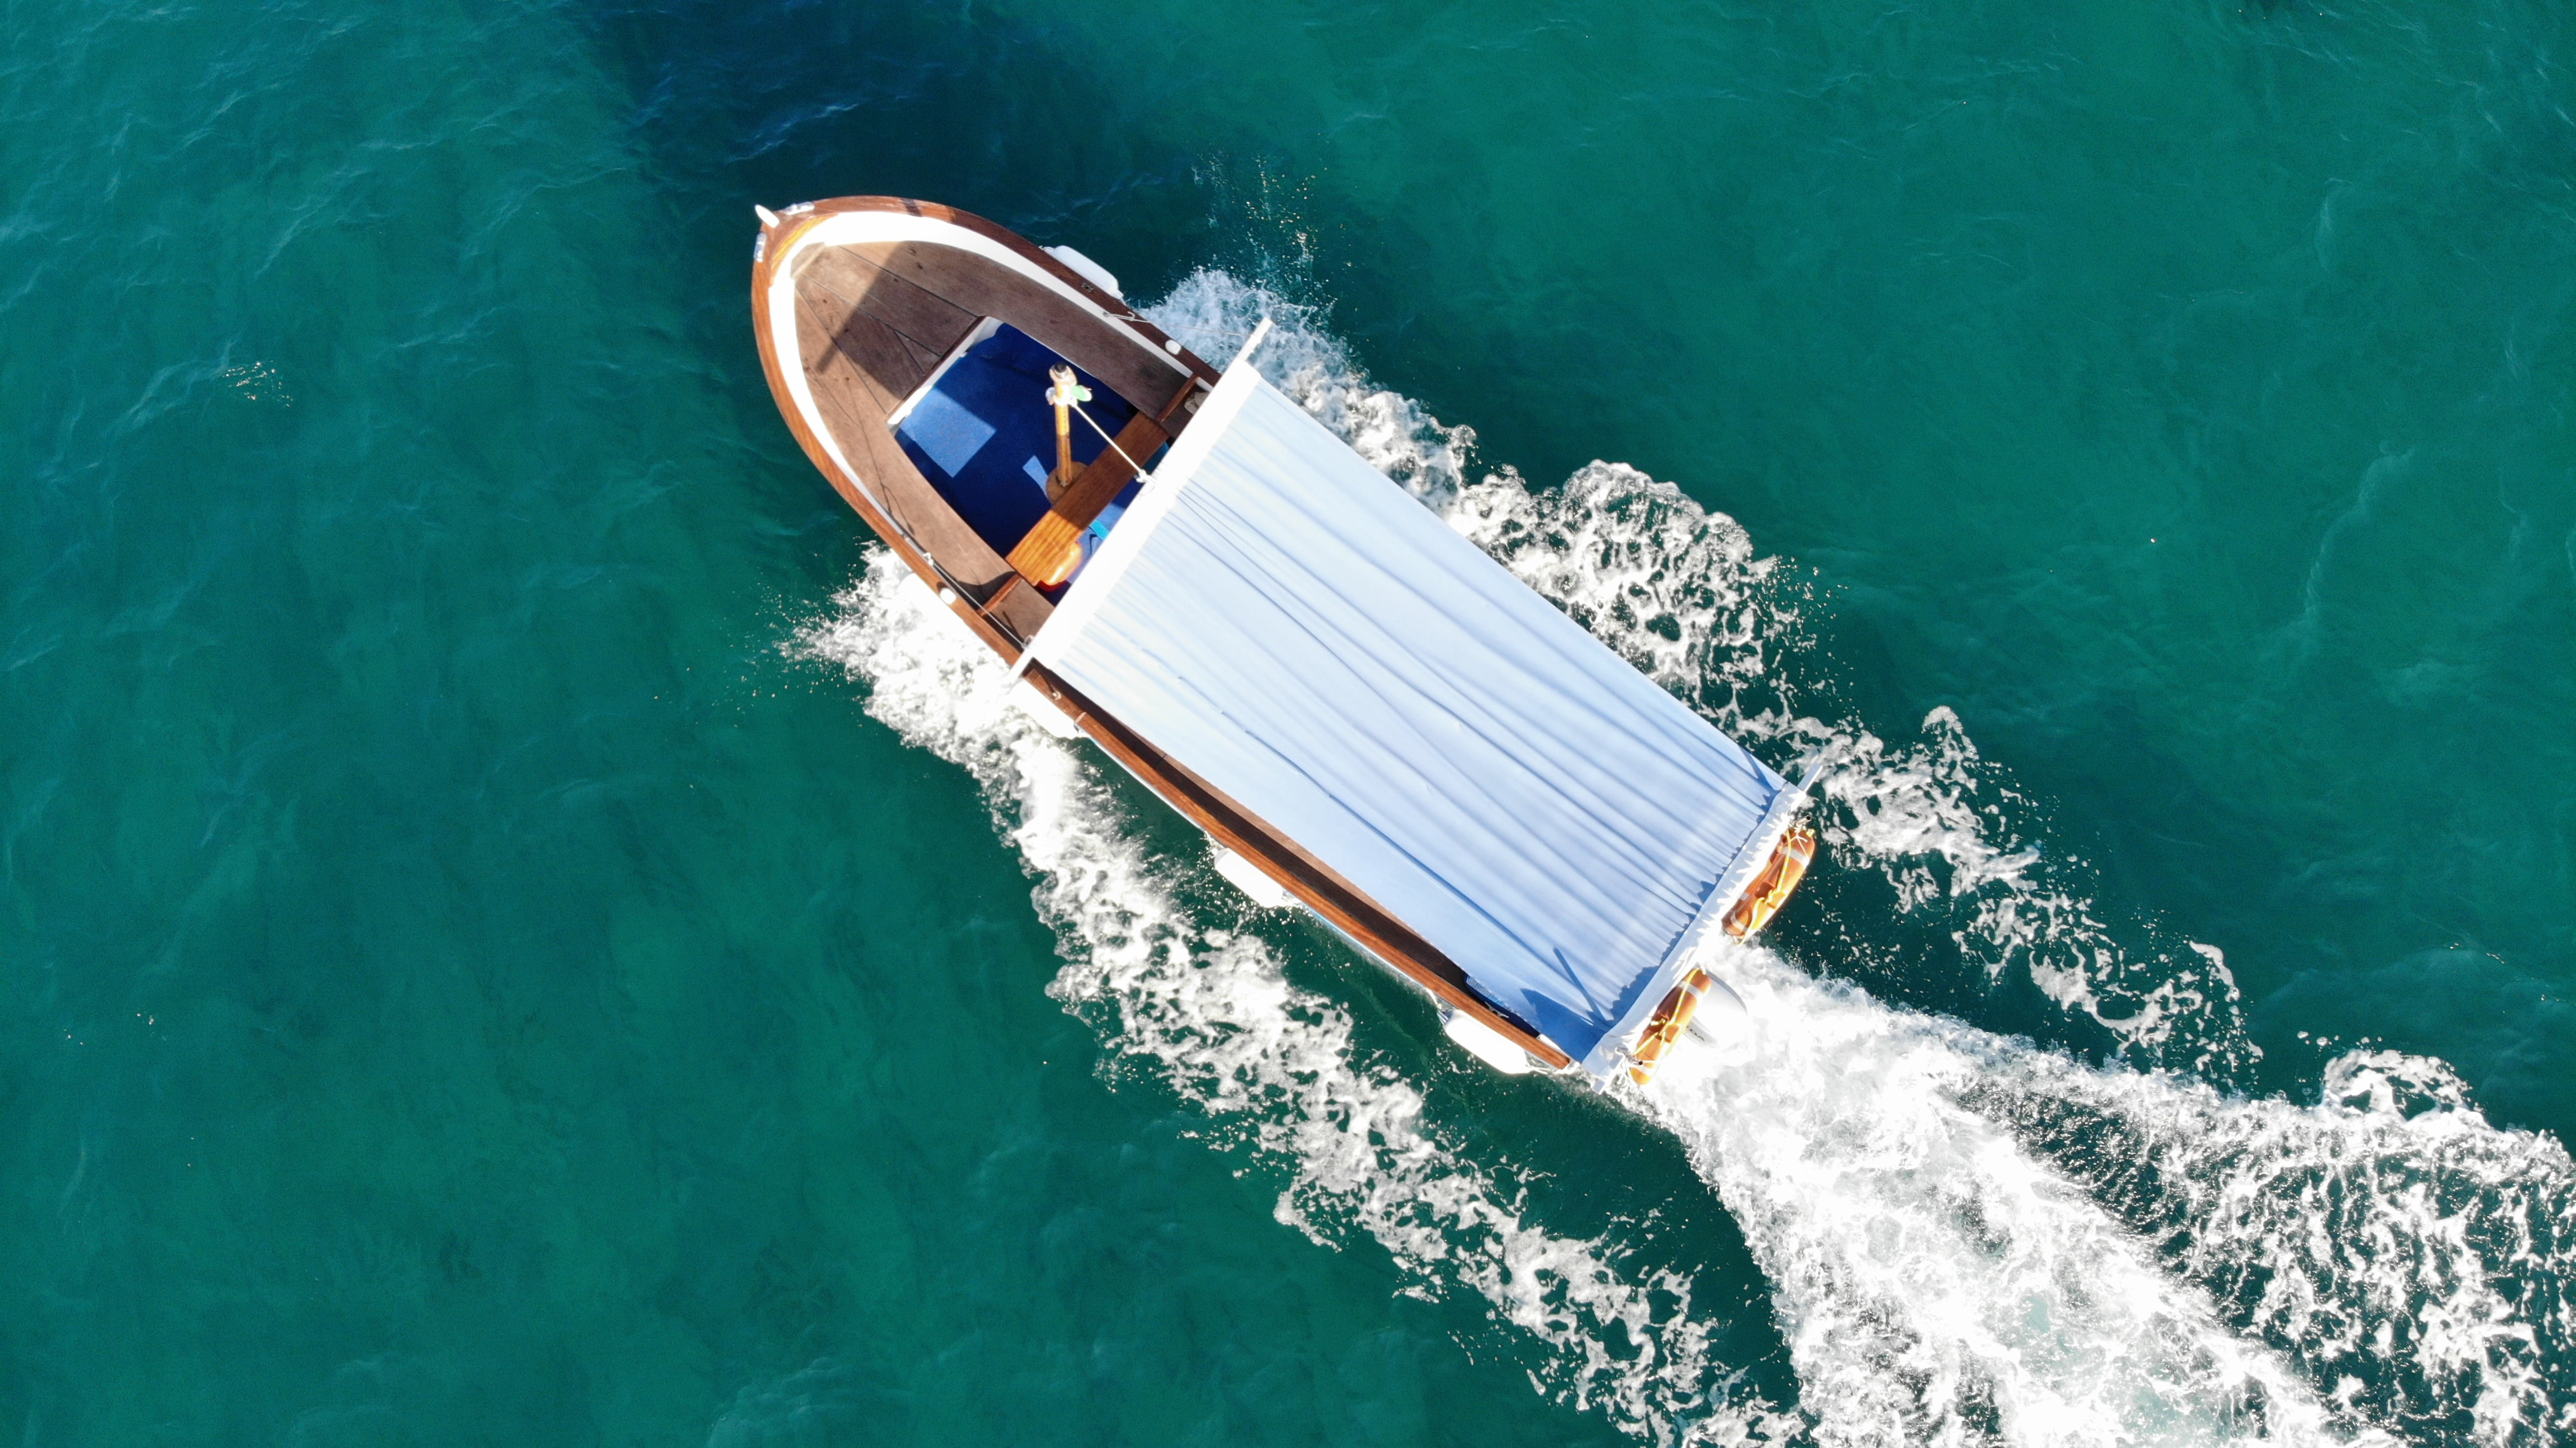 aerial photography of white and brown wooden boat